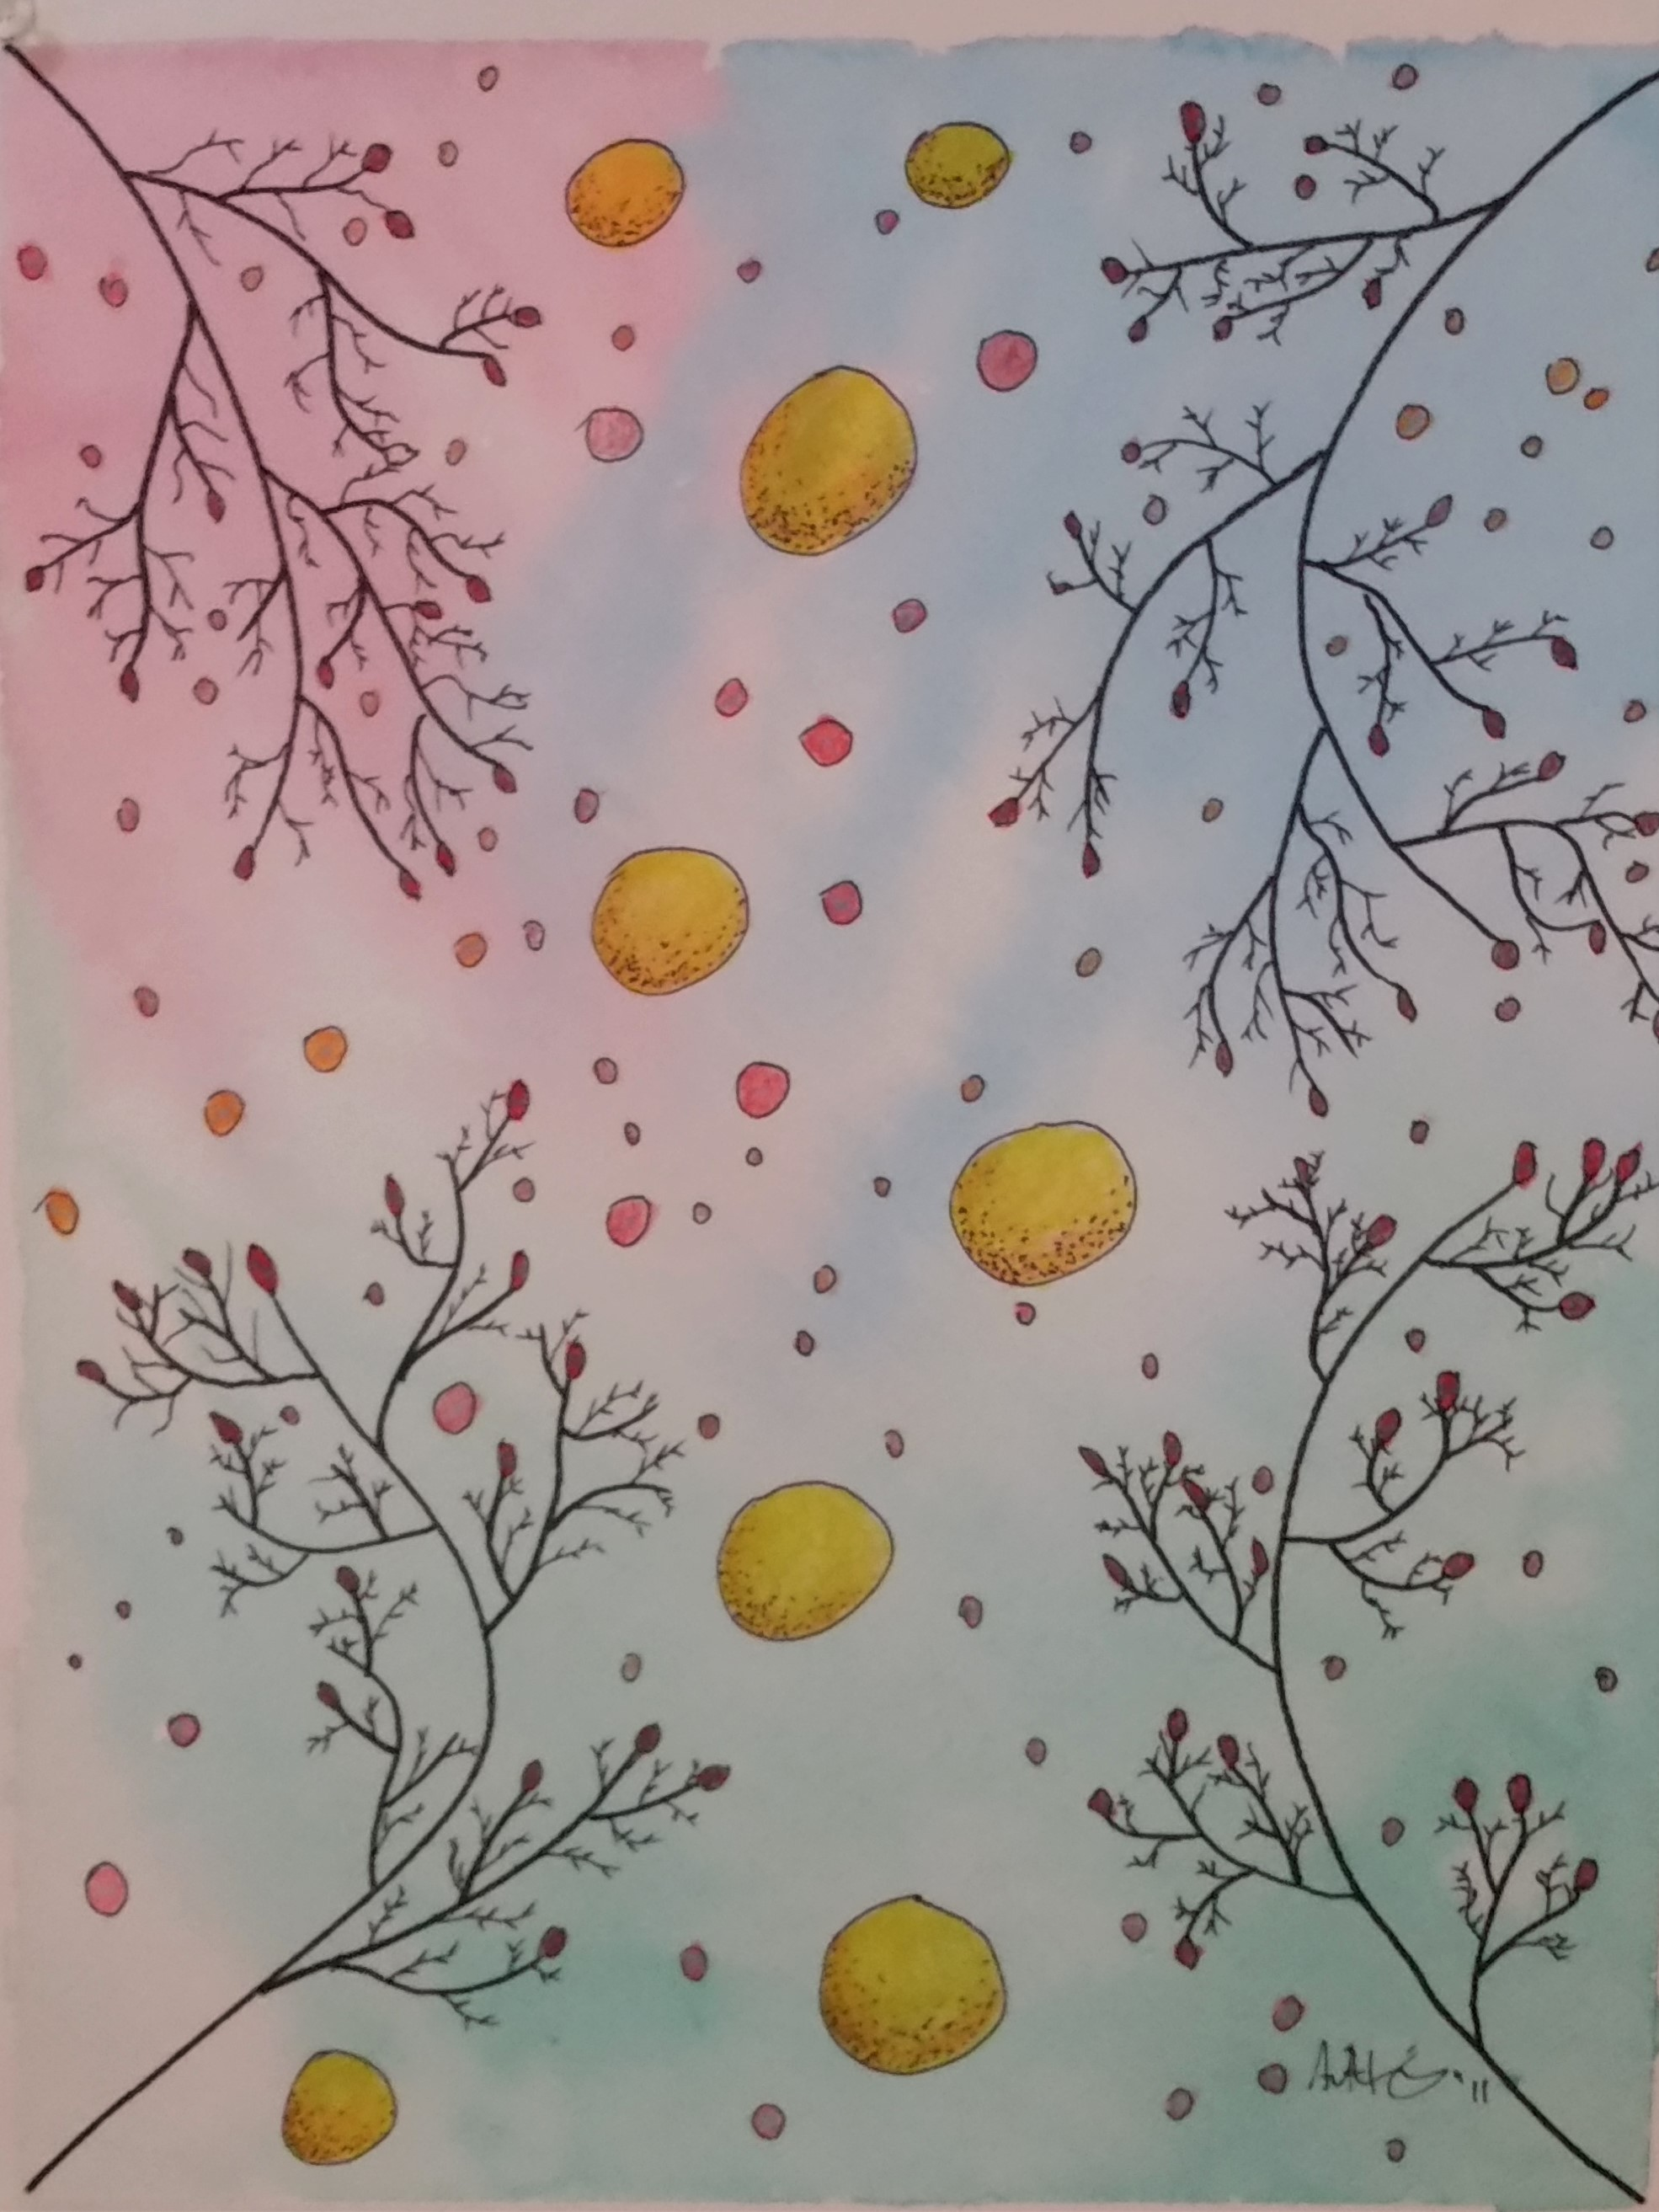 Spheres and Twigs 1